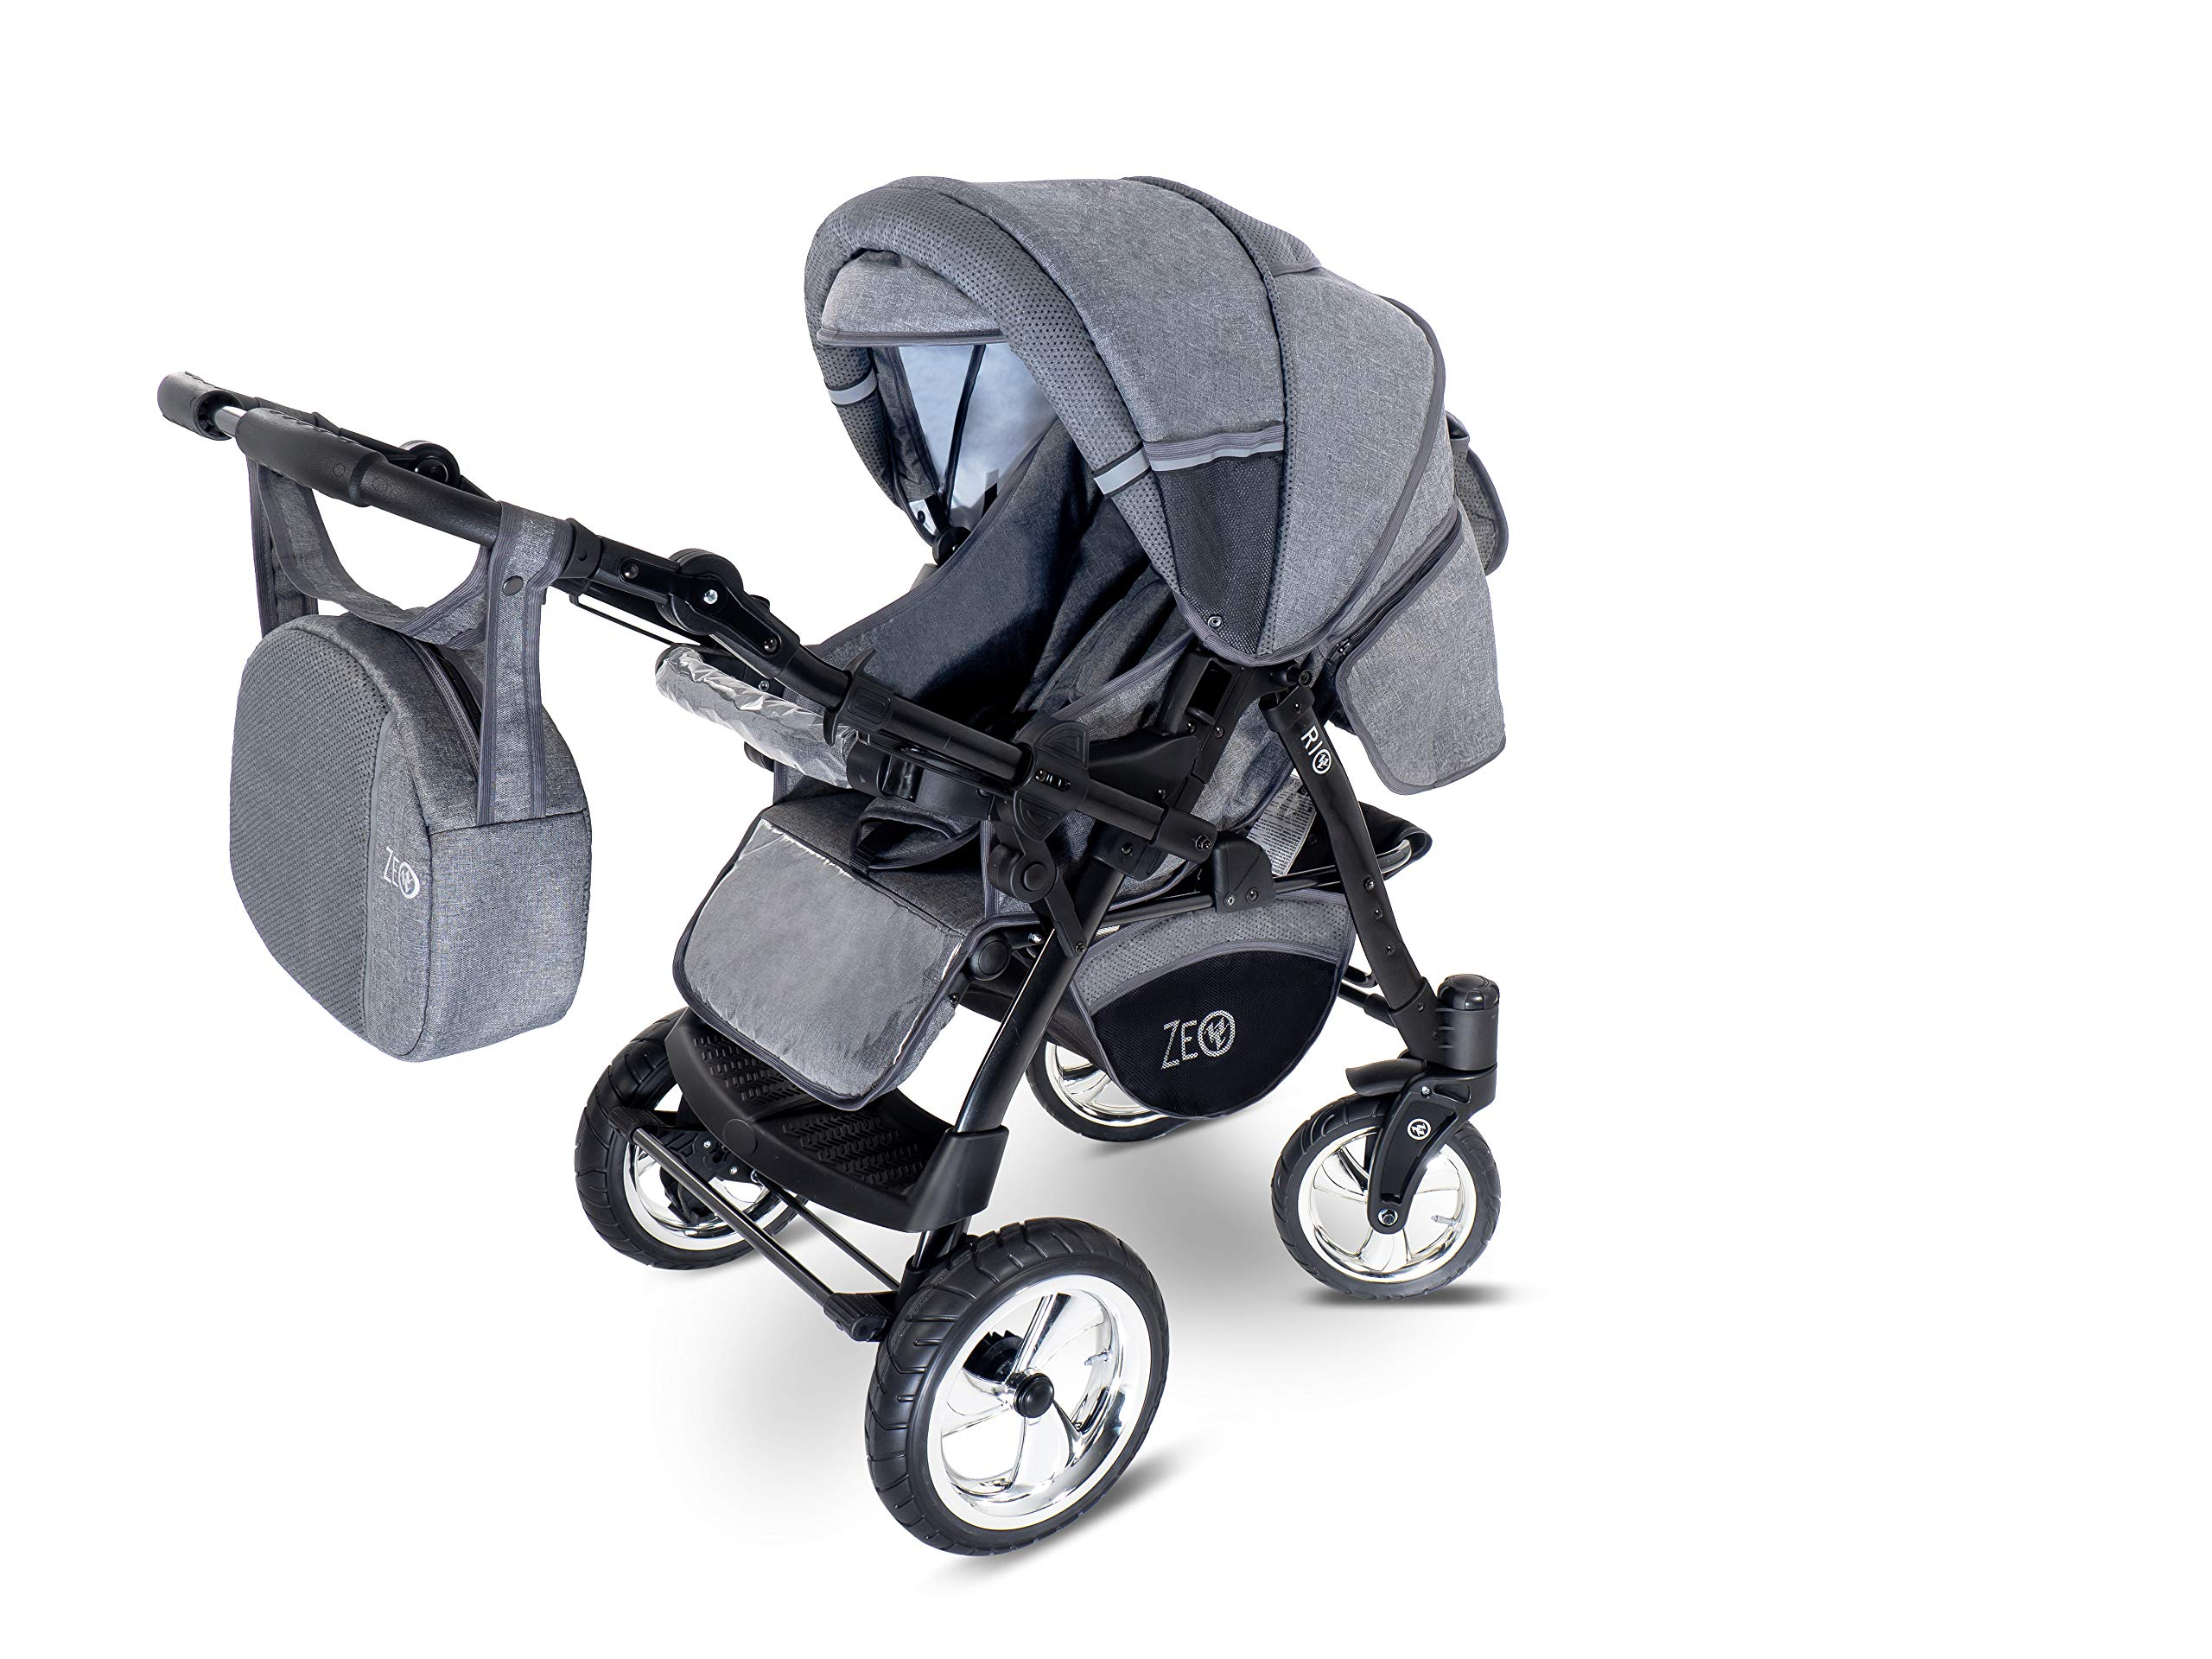 Baby Pram Zeo Rio 3in1 Set - All You Need! carrycot Gondola Buggy Pushchair car seat (R3) Zeo 3 in 1 combination stroller complete set, with reversible handle to the buggy, child car seat or baby carriage Has 360 ° swiveling wheels, two-fold suspension, four-stage backrest, five-position adjustable footrest and a five-point safety belt The stroller can be easily converted into other functions and easy to transport 6